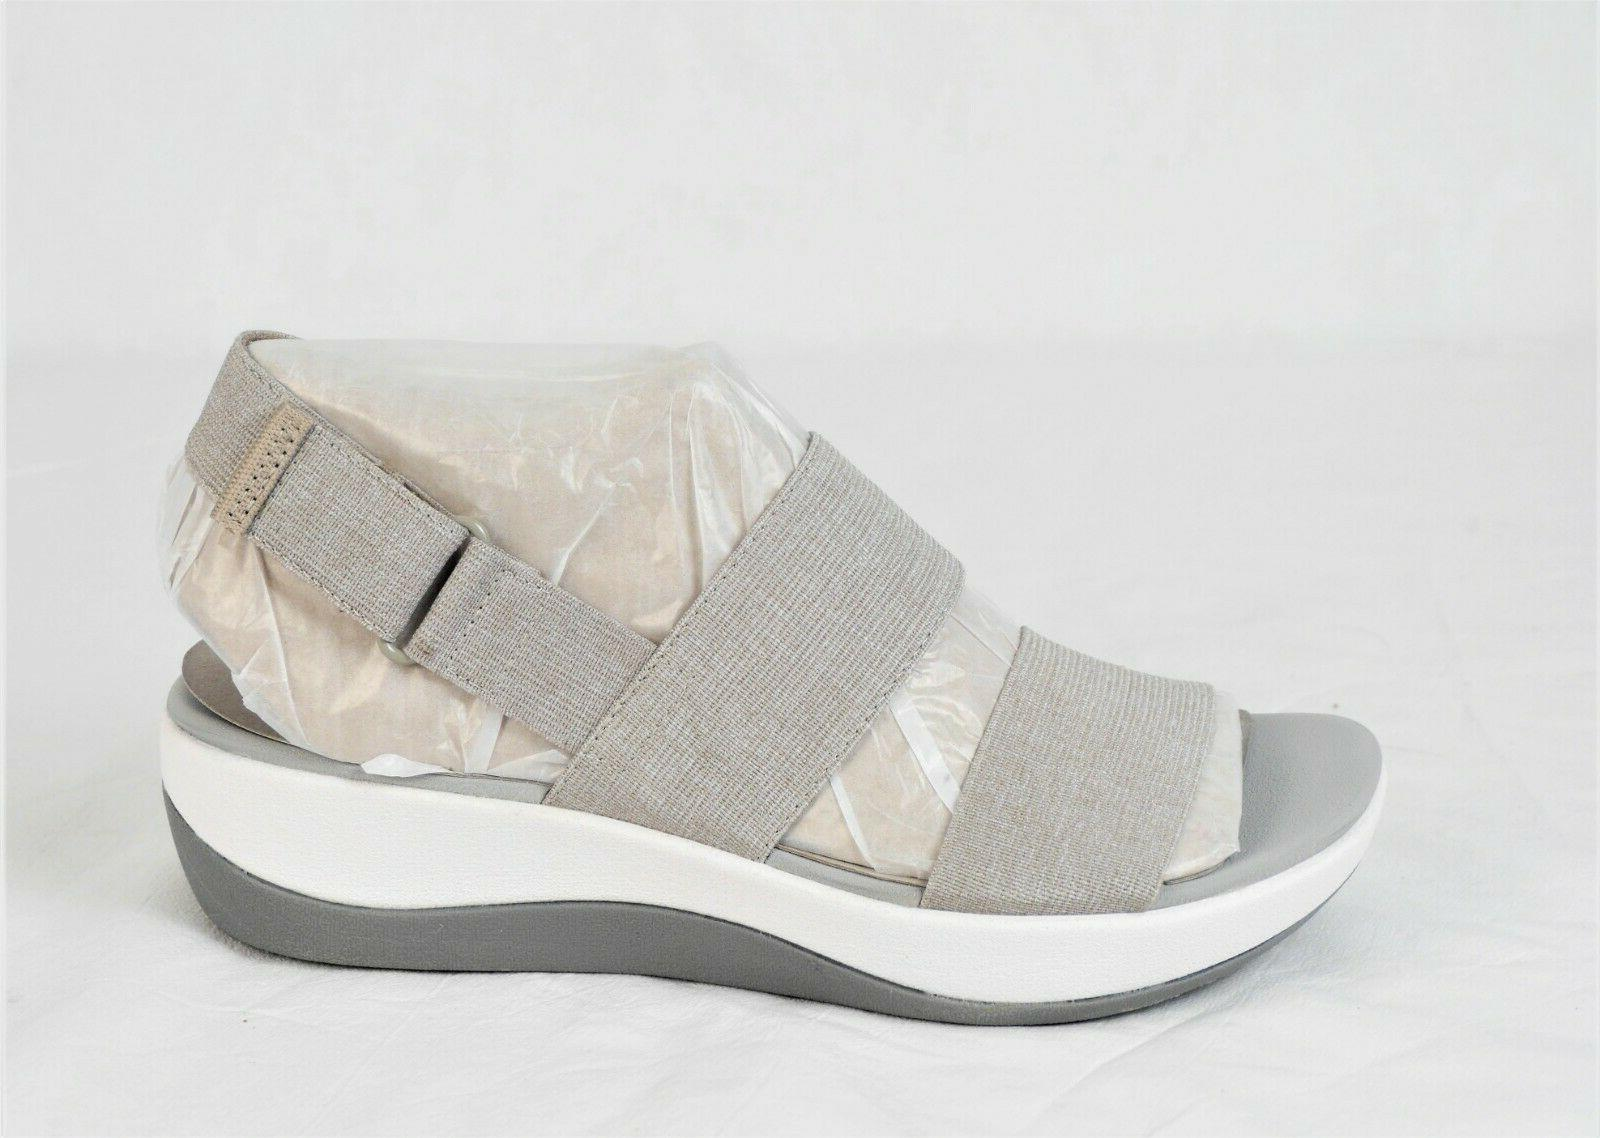 Cloudsteppers CLARKS Womens Wedge Arla Sand Heather